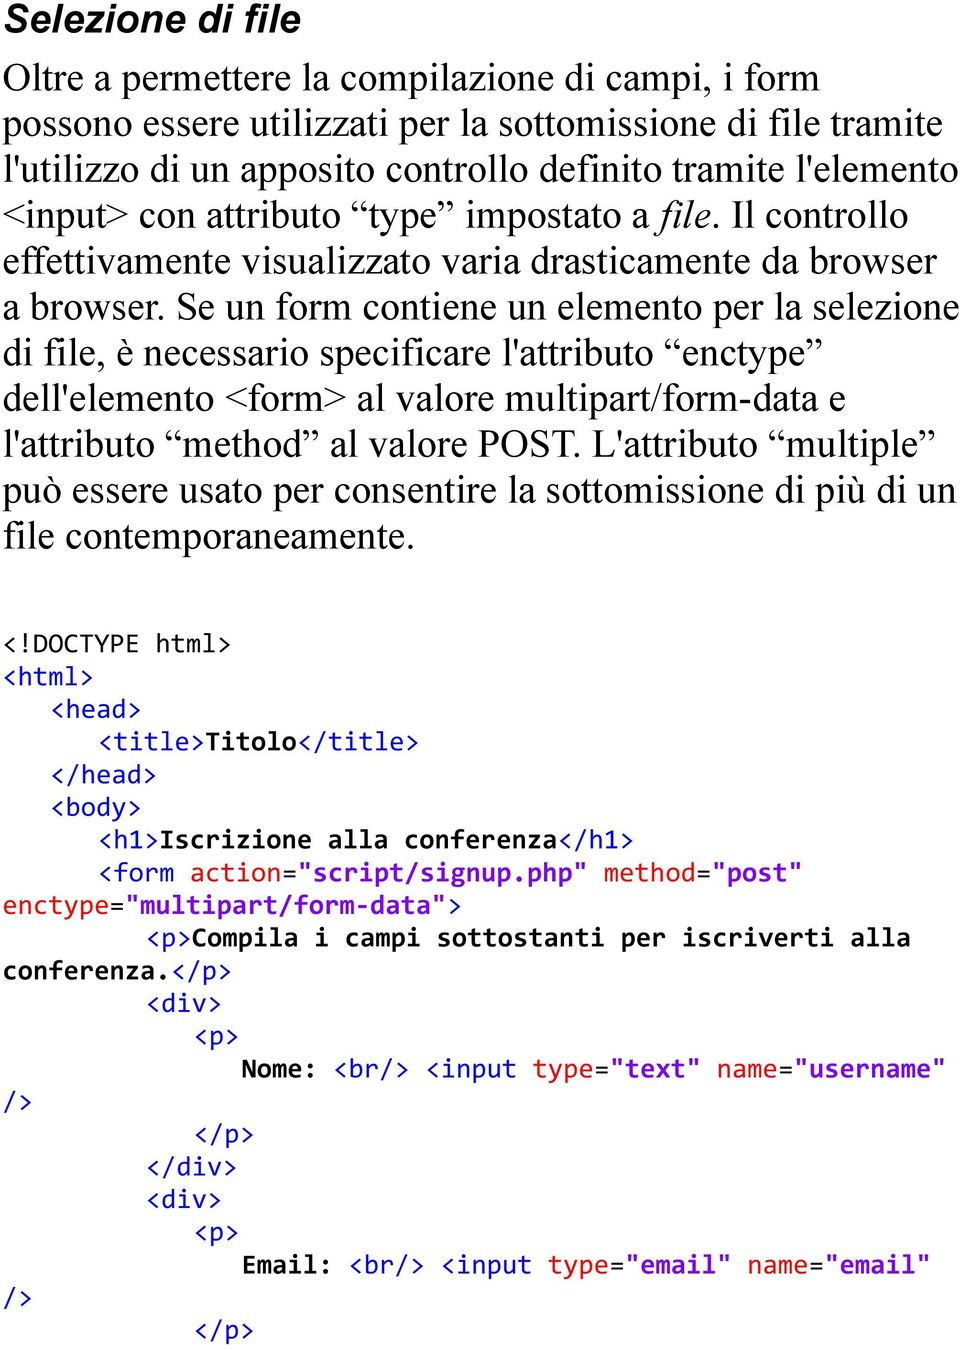 Se un form contiene un elemento per la selezione di file, è necessario specificare l'attributo enctype dell'elemento <form> al valore multipart/form-data e l'attributo method al valore POST.